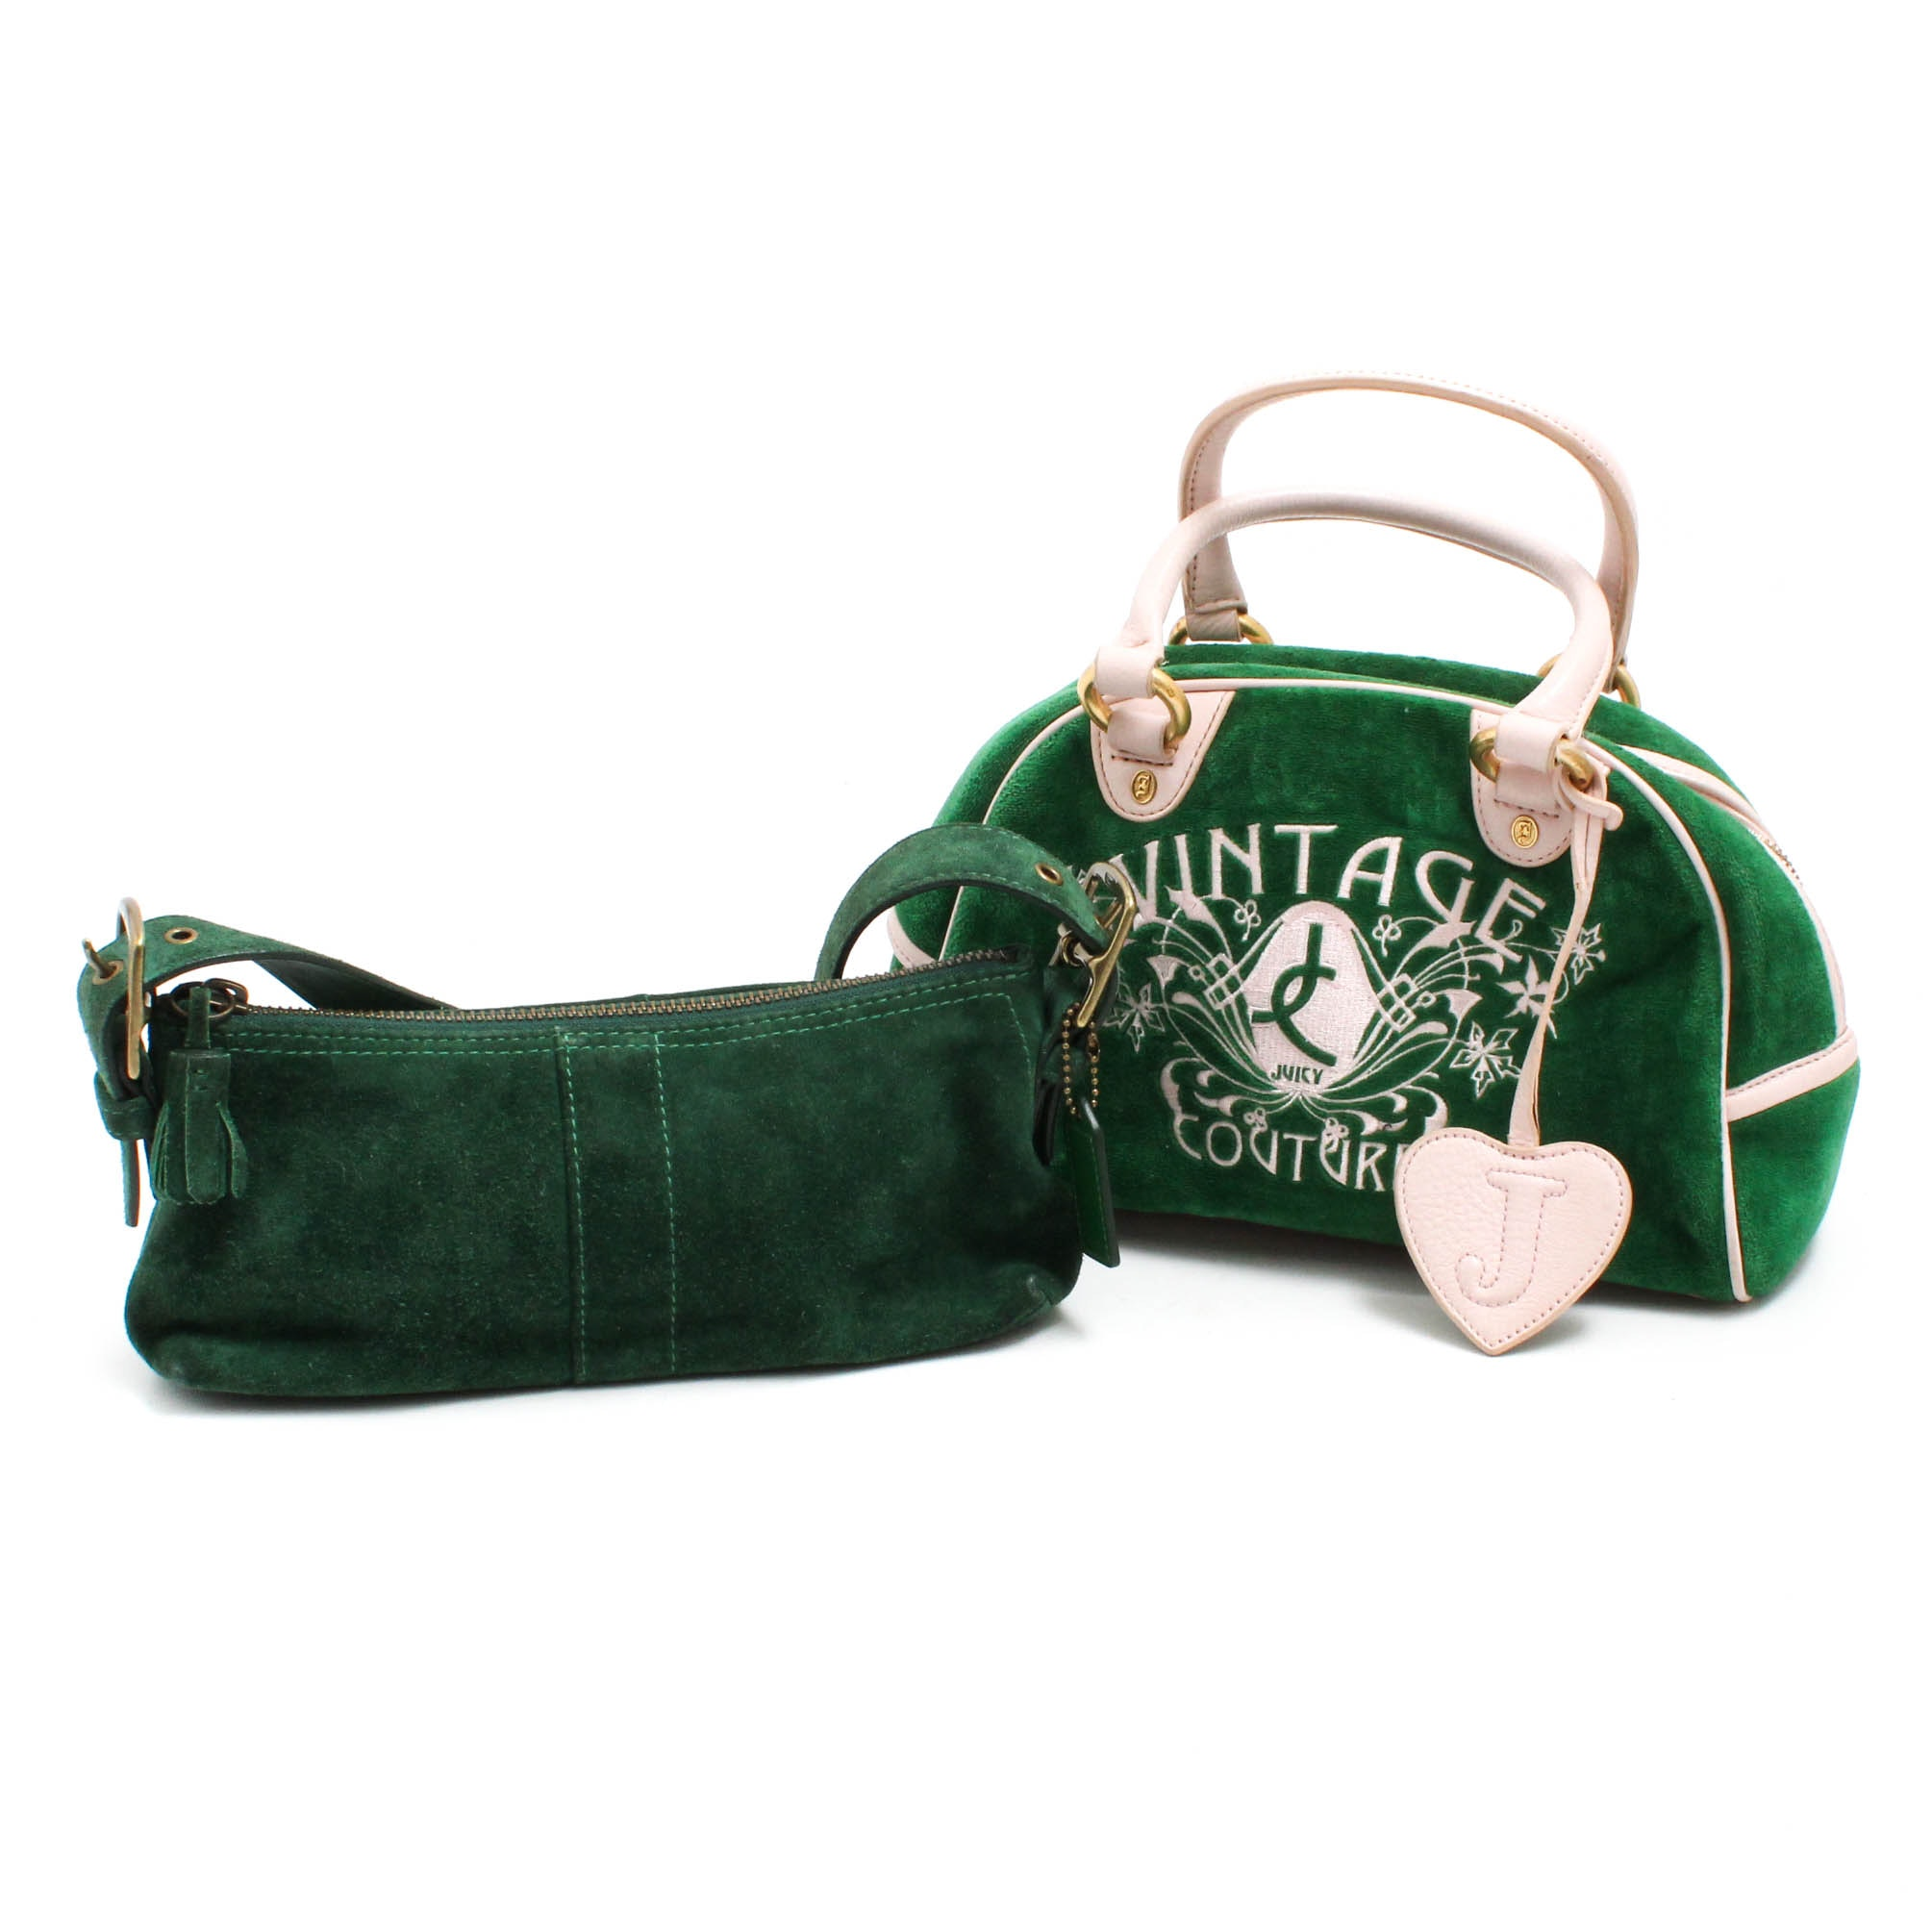 Juicy Couture and Coach Handbags